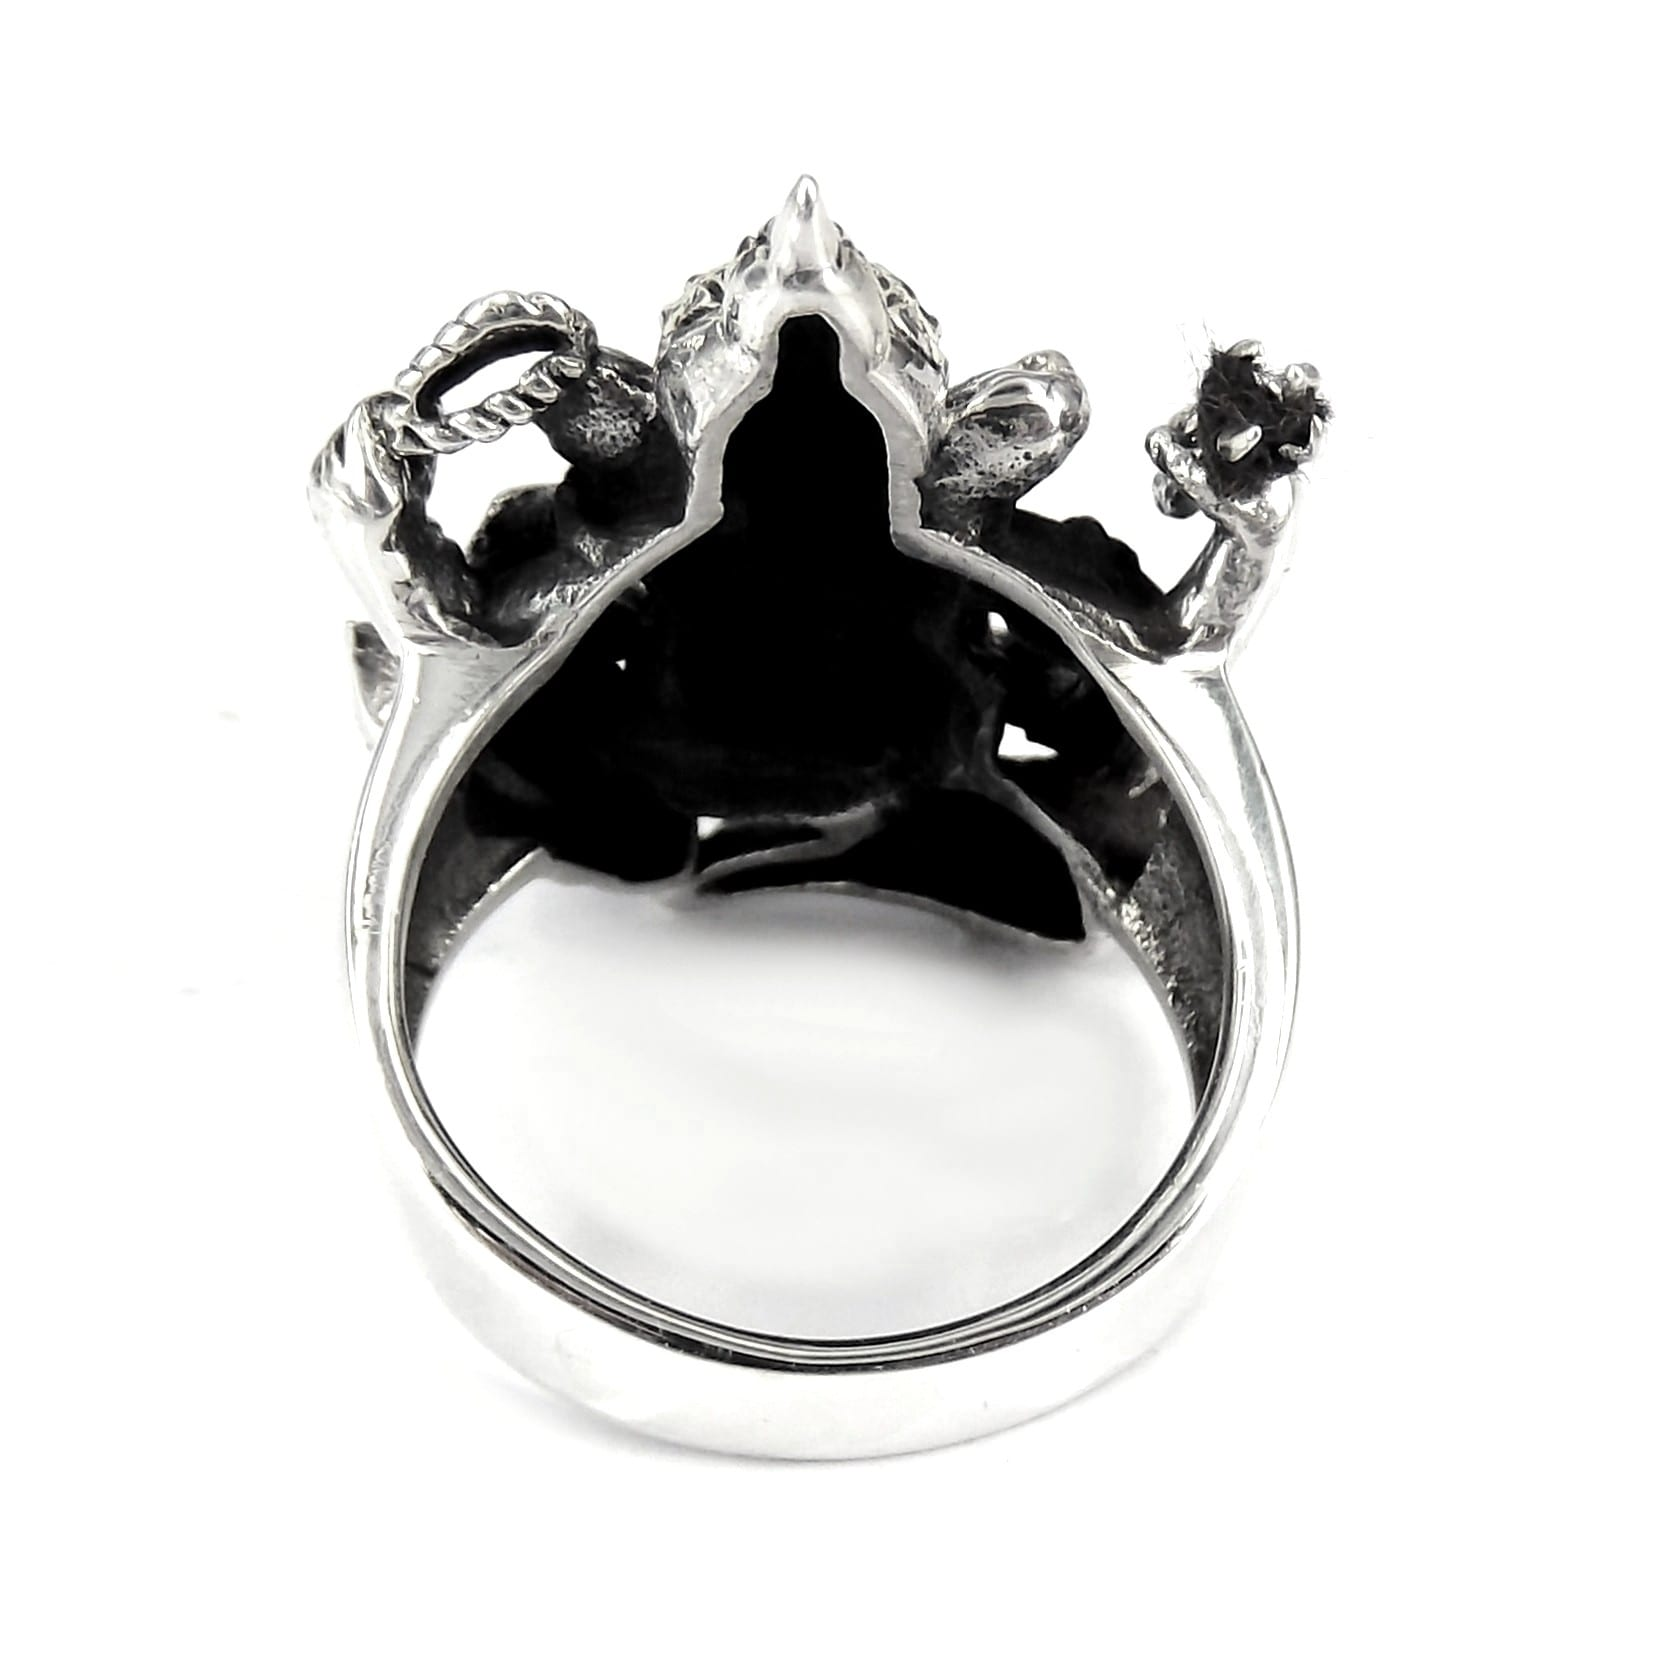 elephant exclusivity sterling by designexclusivity product rings large silver pendant design engagement sil